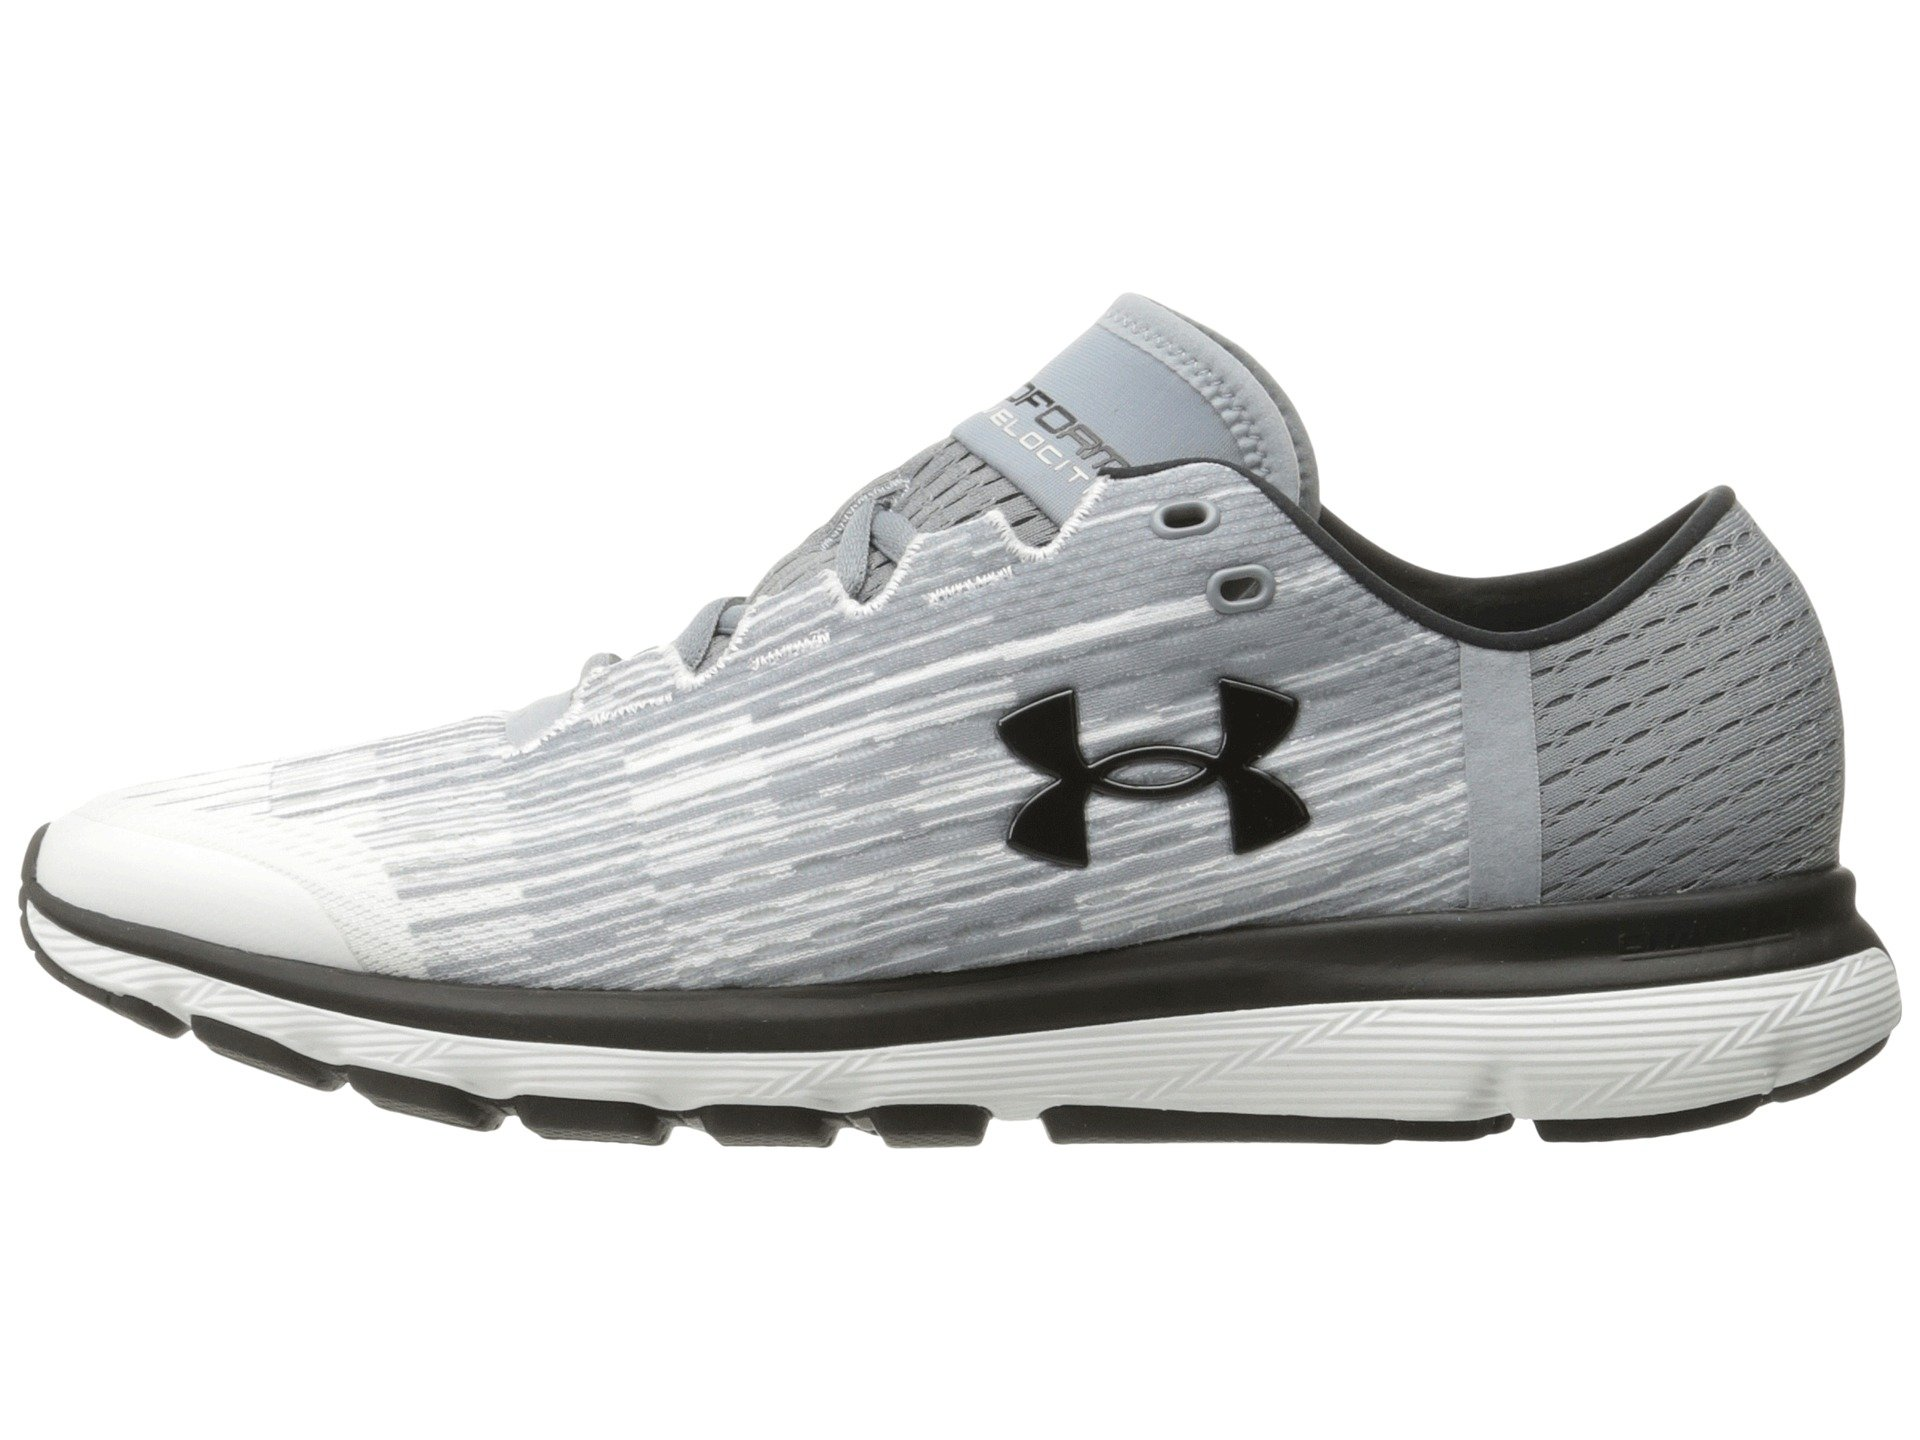 fe39a4e61f0 Under Armour Running Shoes - 9 Best Shoes from Under Armour